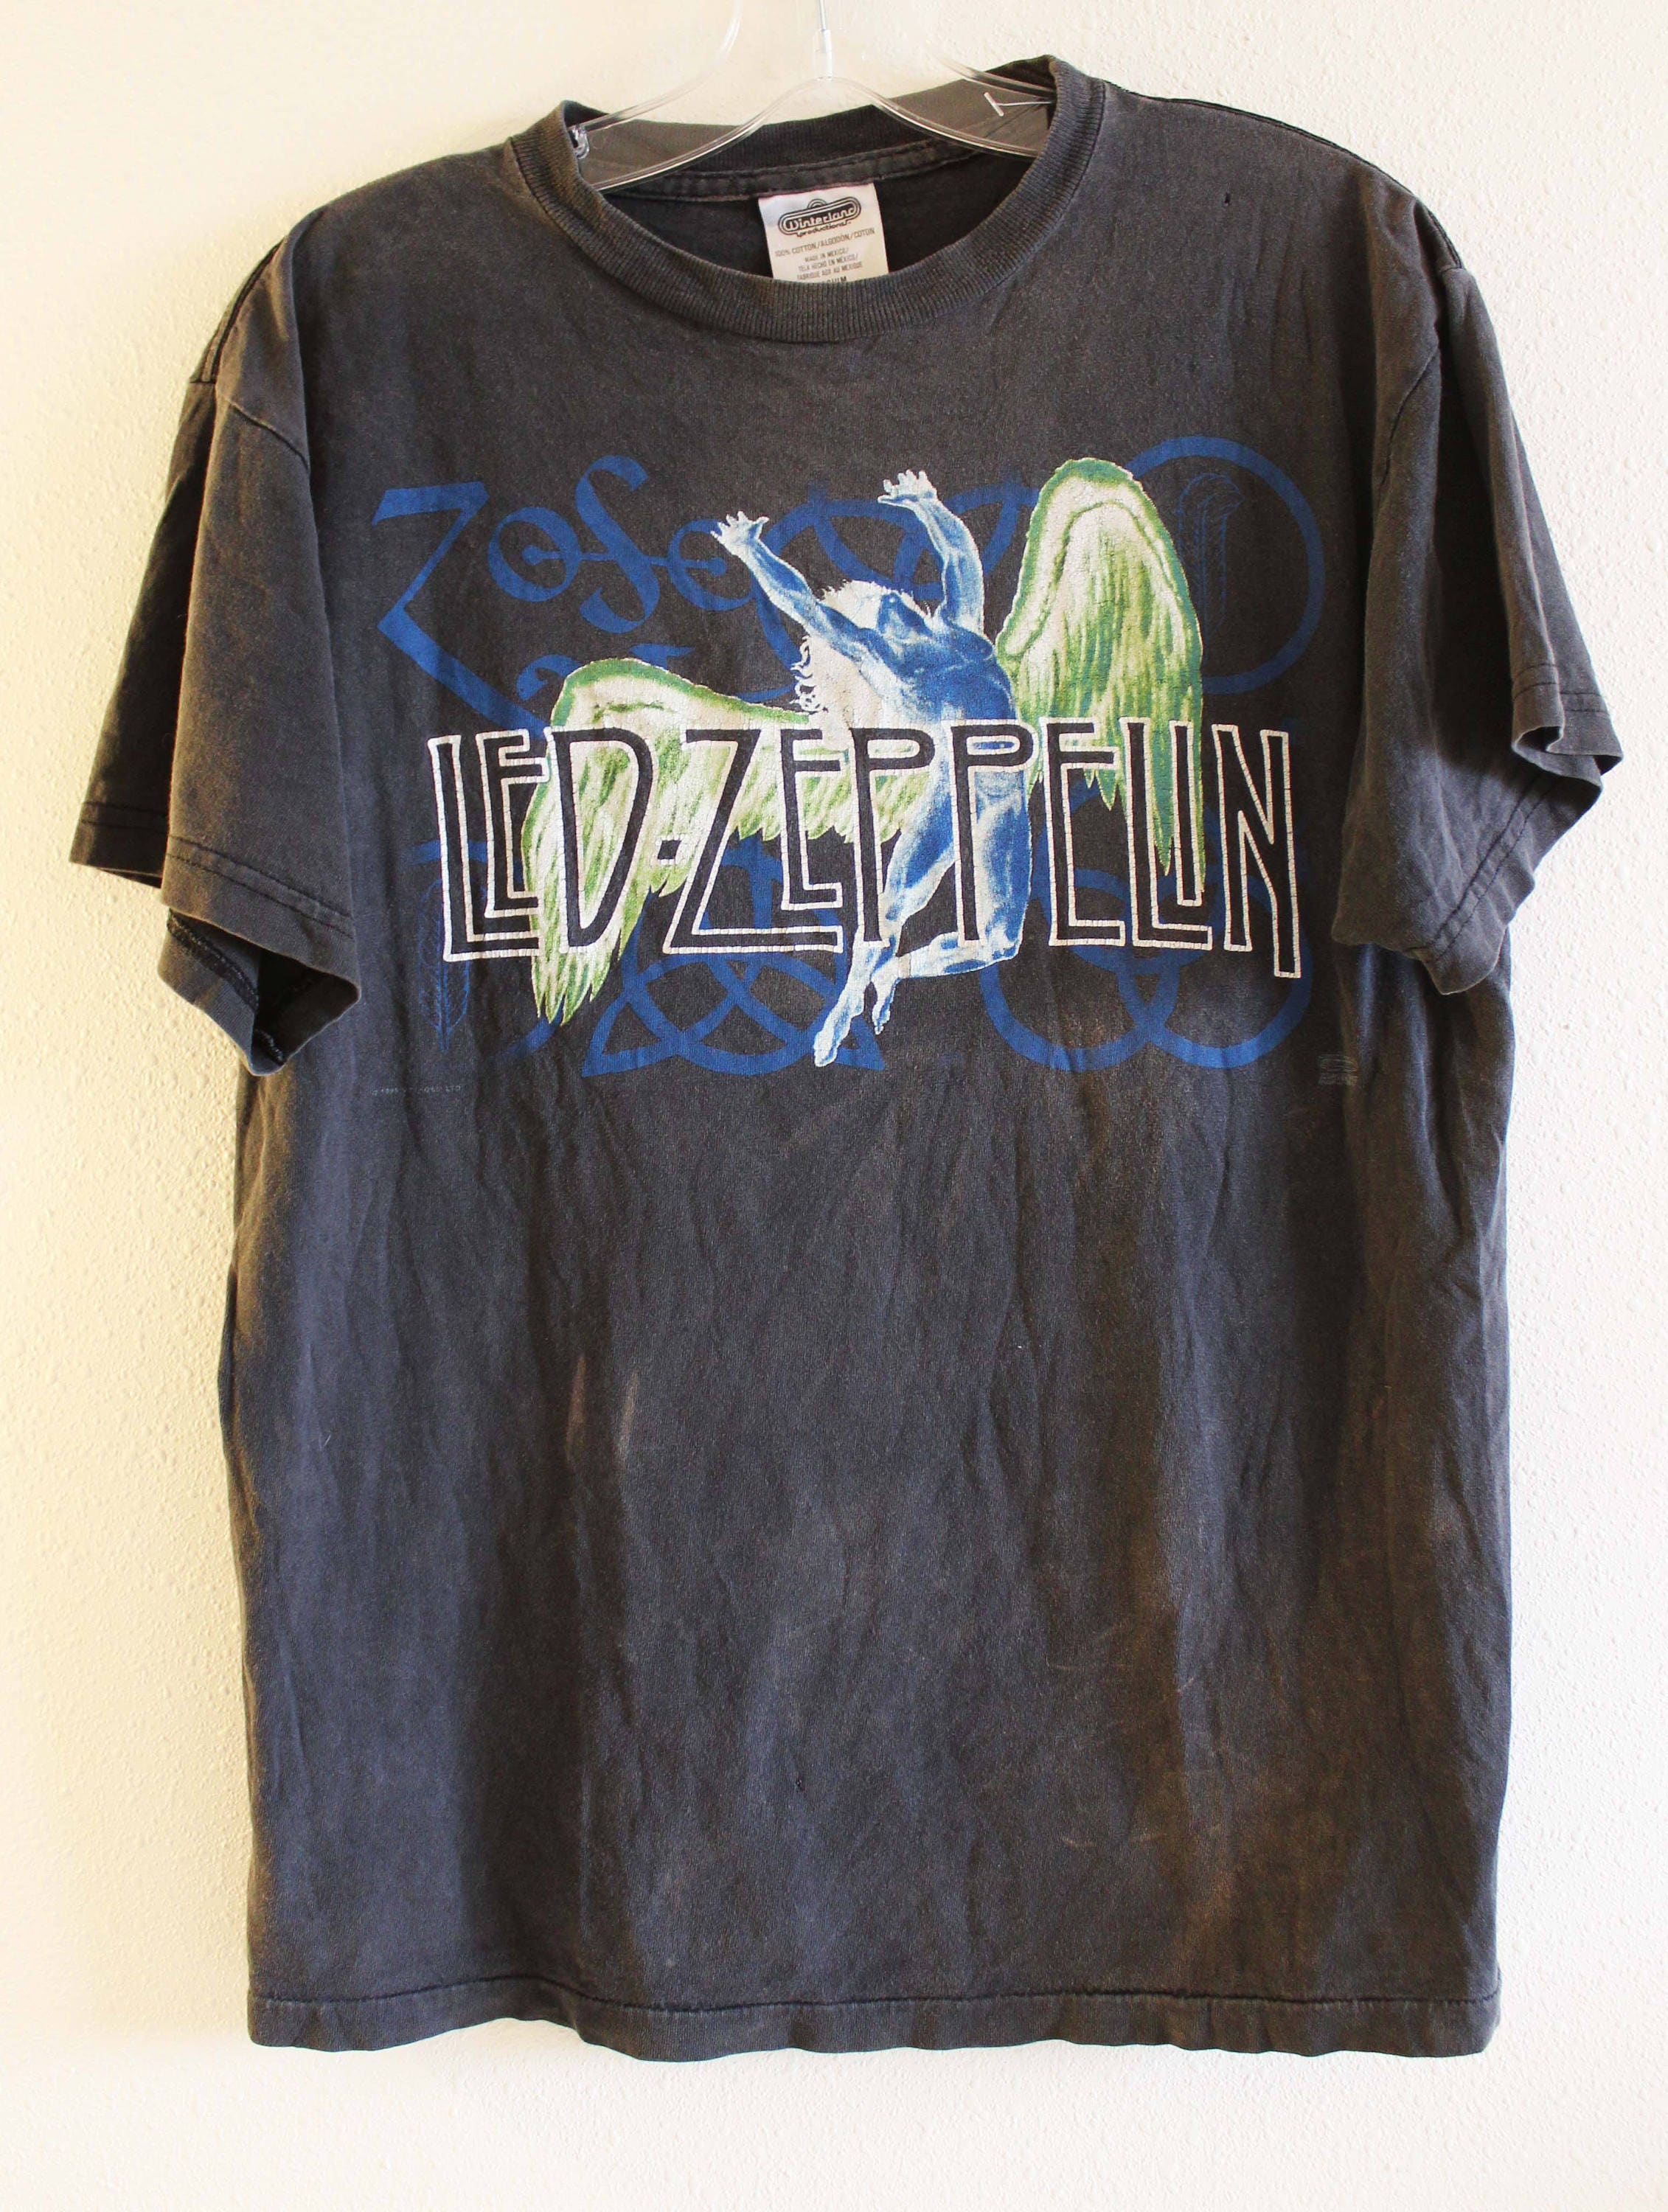 Vintage Led Zeppelin T-shirt - 1995 Led Zeppelin Zoso Swan Song Black T-shirt - 90s Led Zeppelin Tour T-shirt - Rock tee - Band T-shirt dRoTj